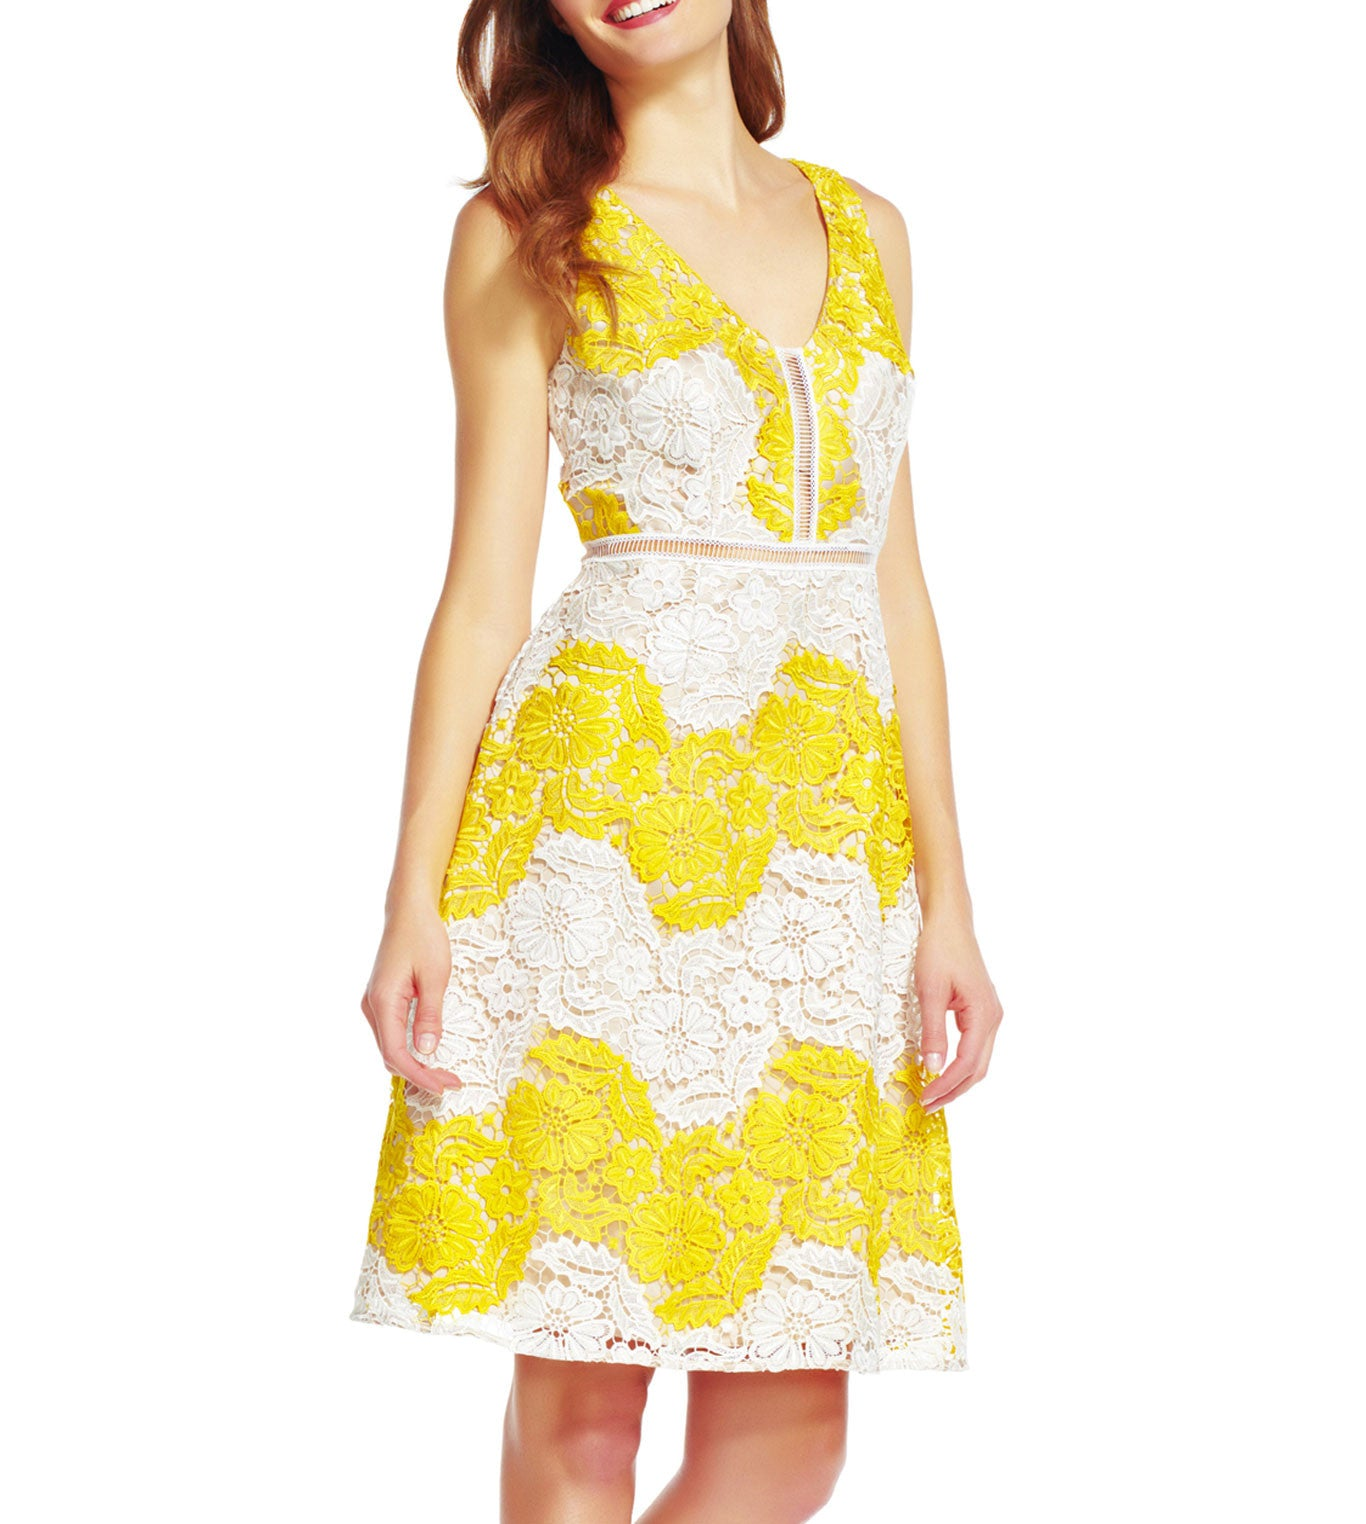 2019 year lifestyle- White and yellow sundress